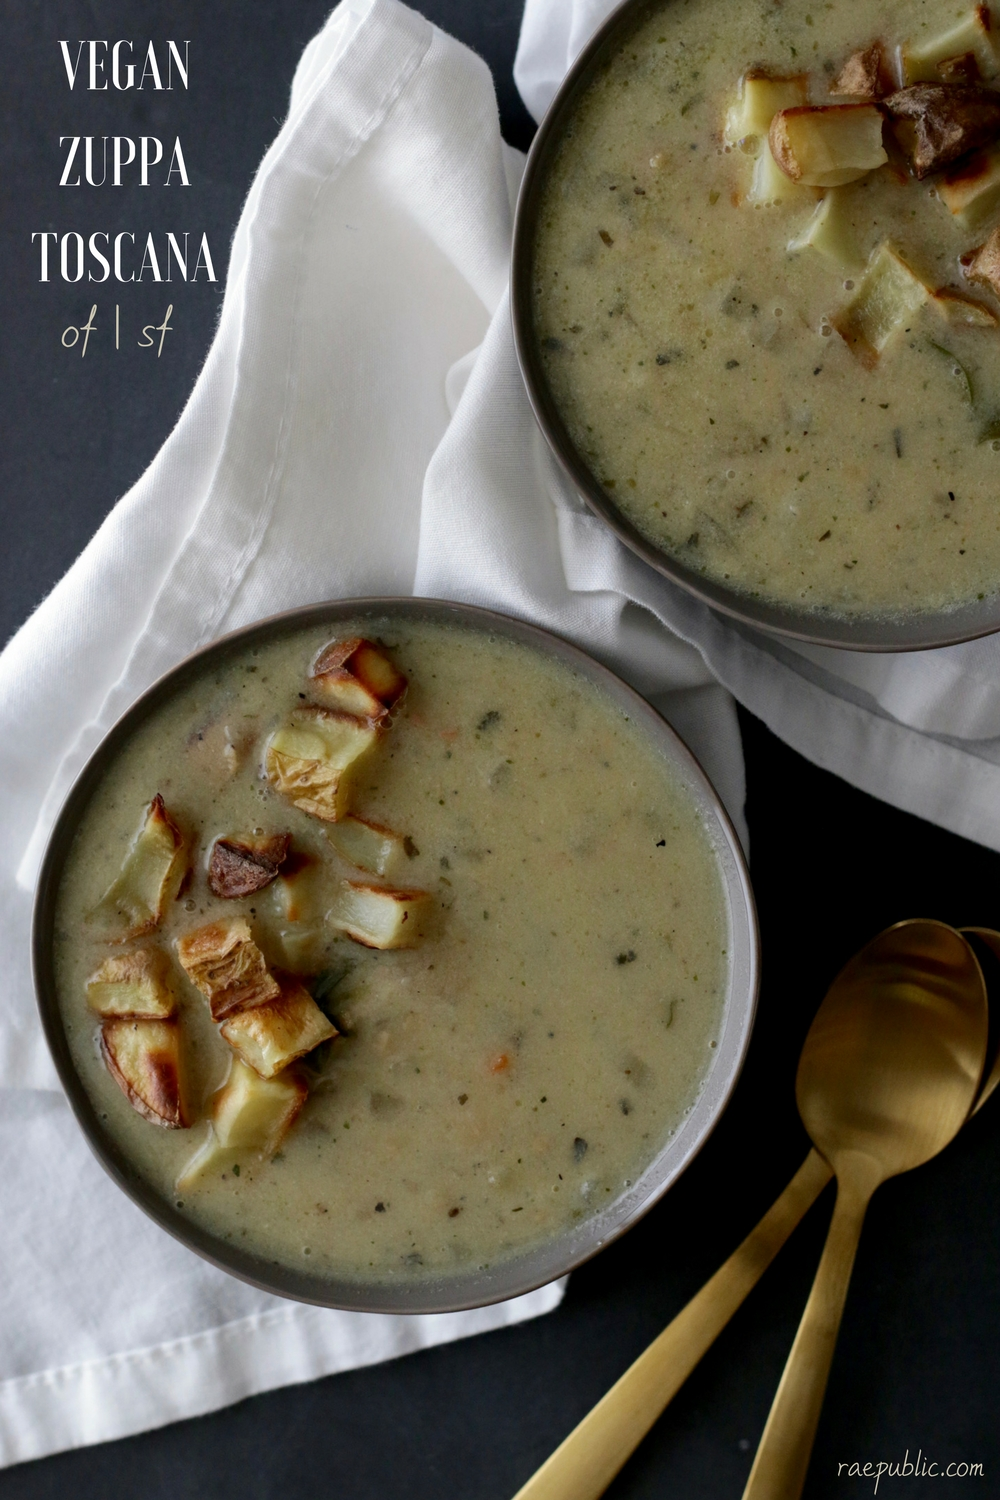 This is seriously the best vegan soup ever. Plant-based Zuppa Toscana made with vegan sausage.